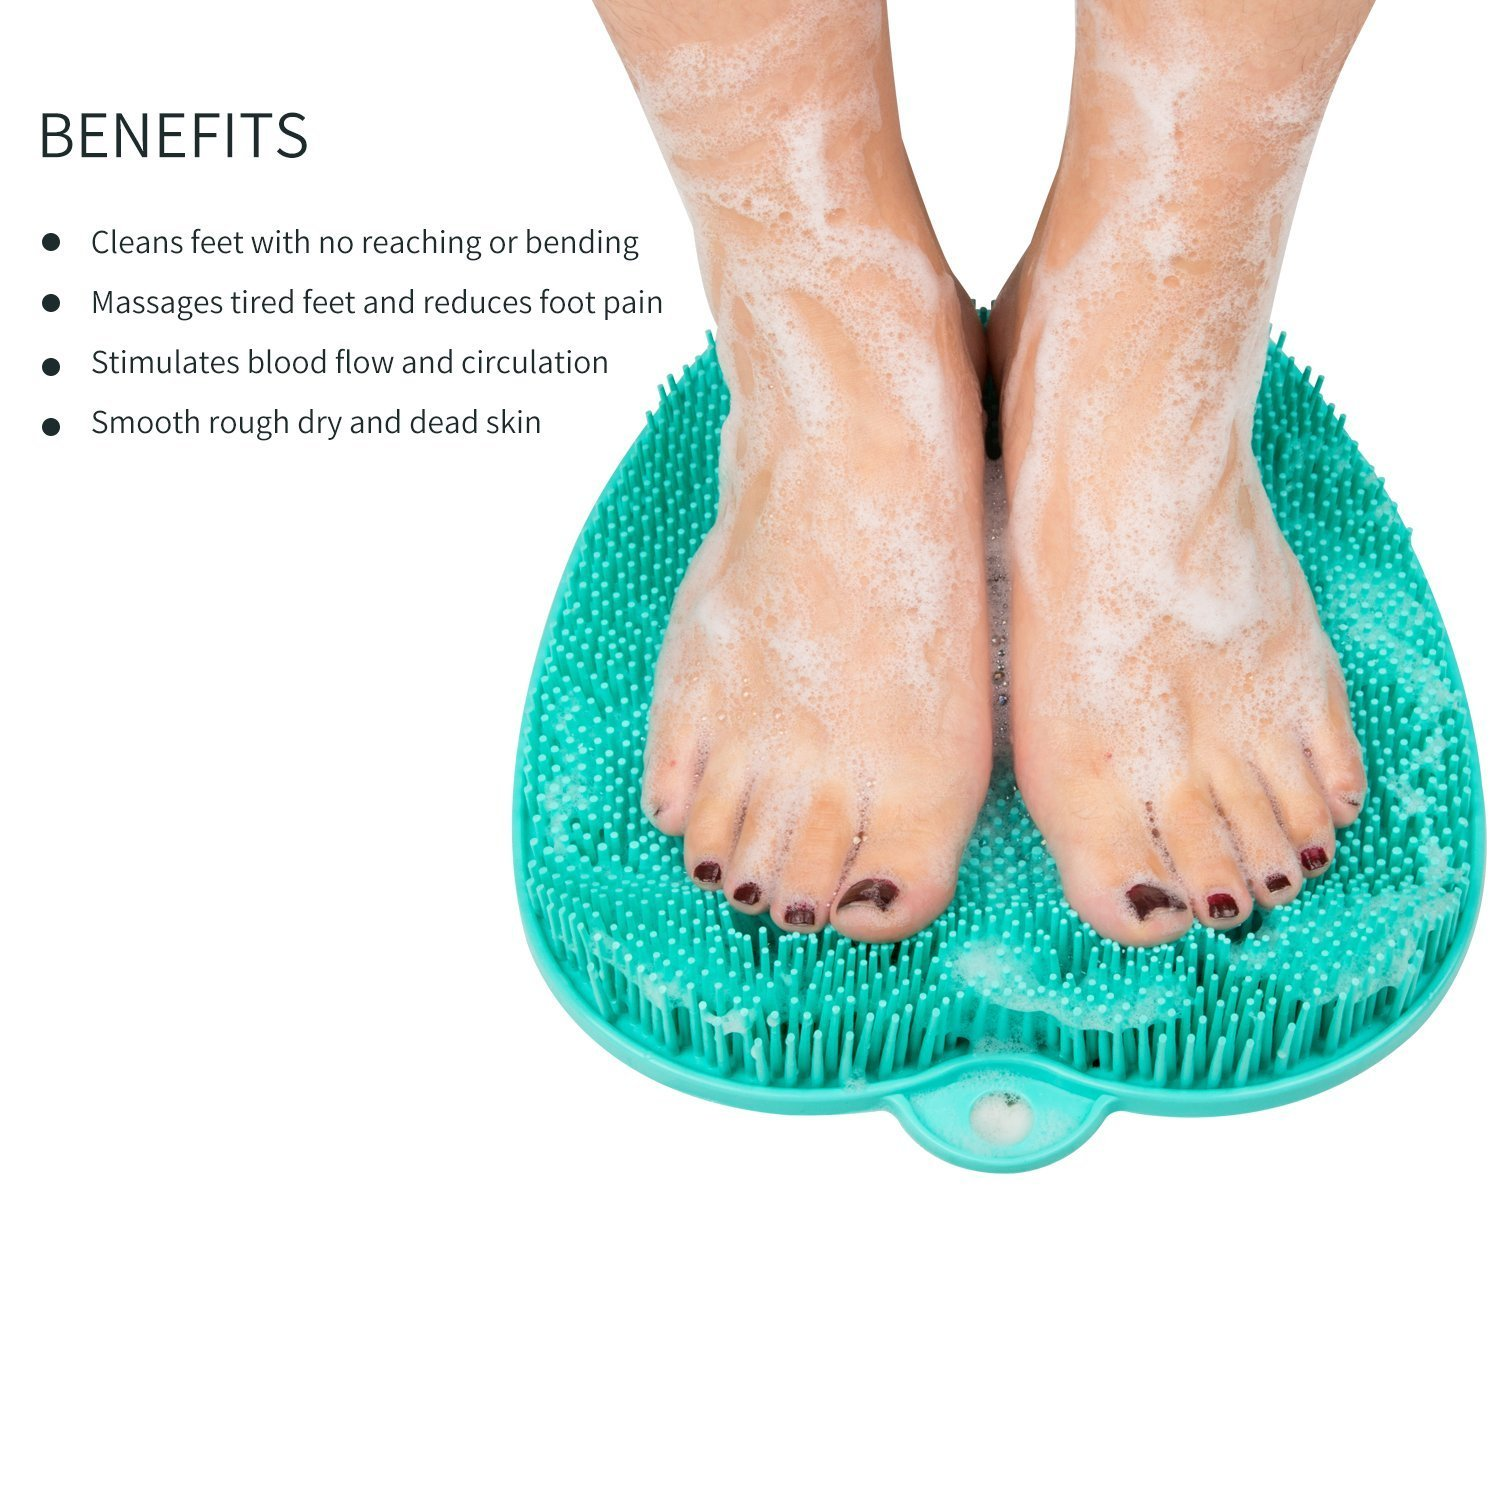 YaFex Shower Foot Massager Scrubber & Cleaner for Shower Floor, Add A Pedicure Foot File Callus Remover for Foot Health